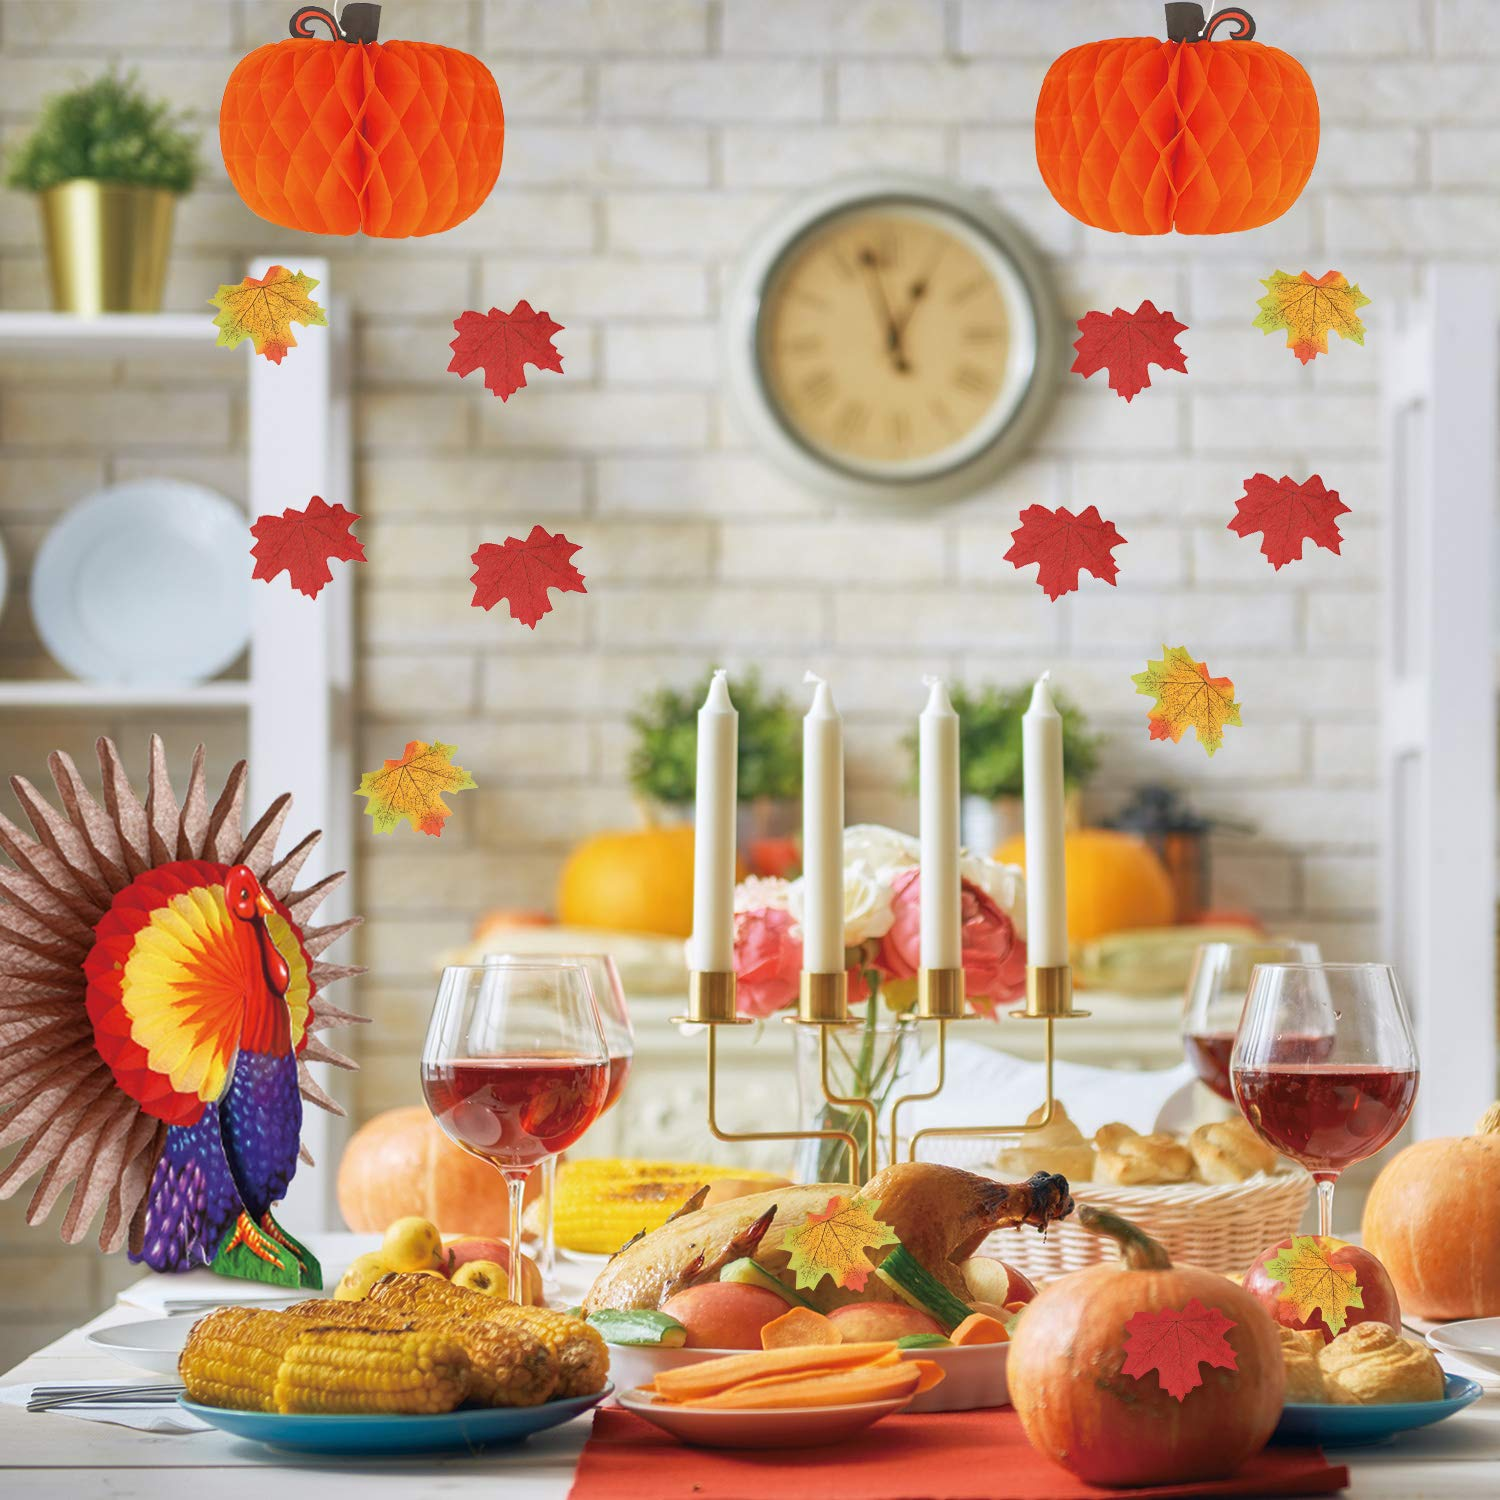 100 Pieces Artificial Maple Leaves Includes Give Thanks Bunting Banner Thanksgiving Turkey Centerpiece 104 Pieces Thanksgiving Party Table Decorations 2 Pieces Paper Honeycomb Pumpkin